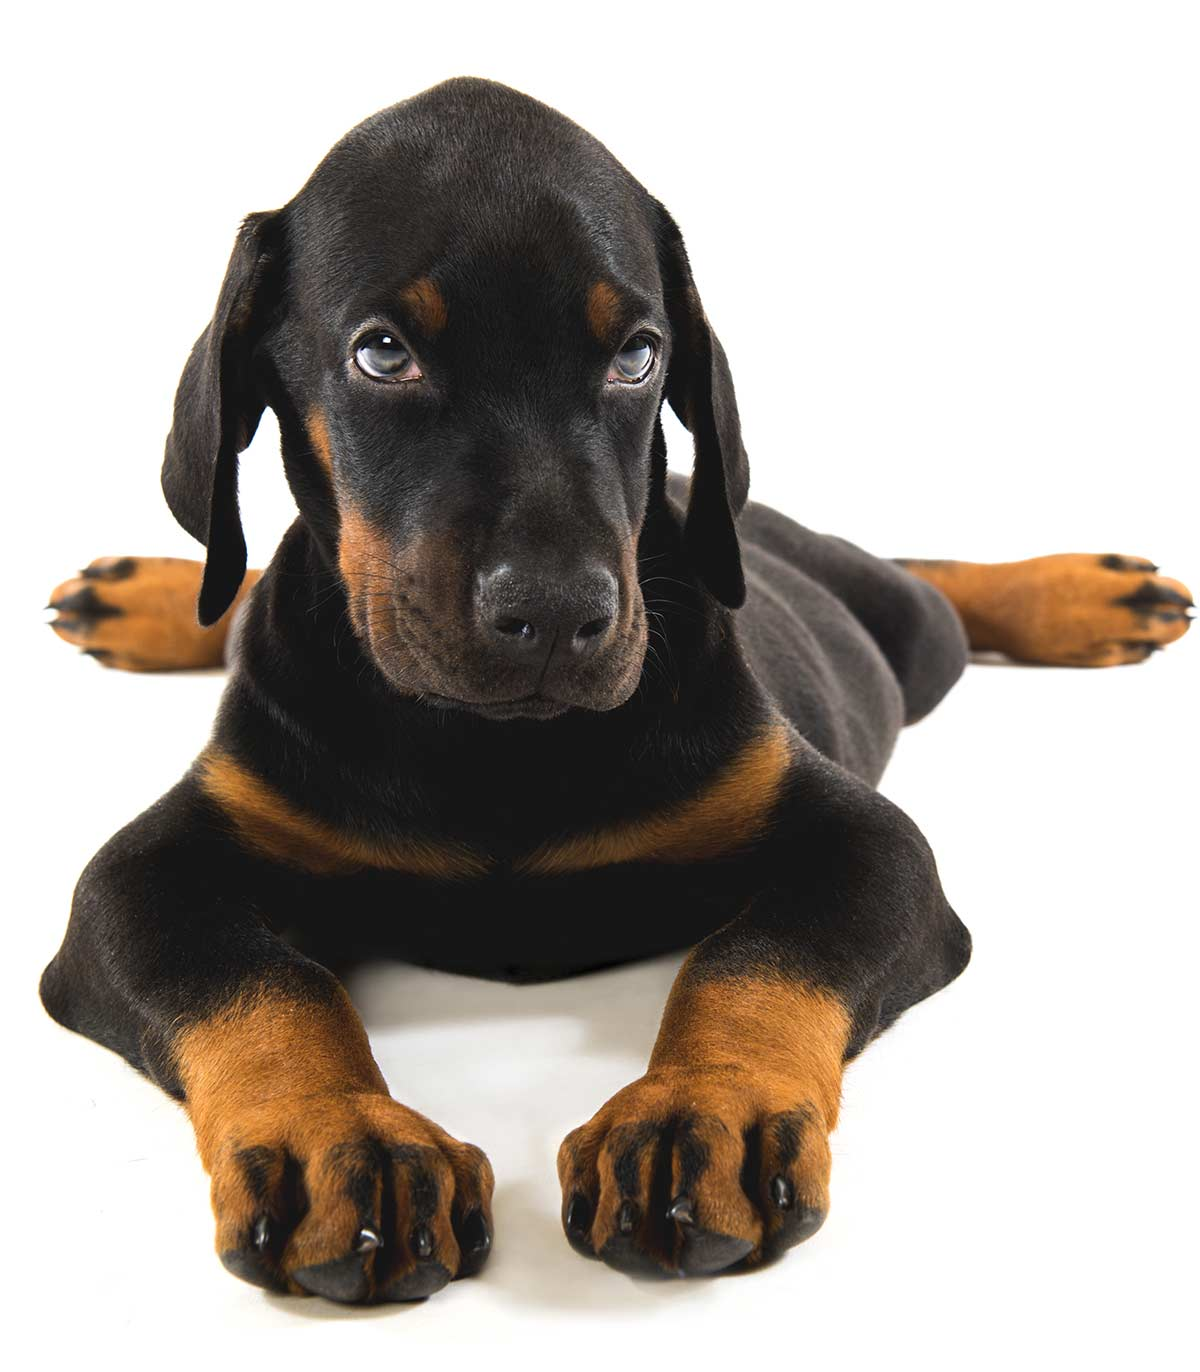 Best Food For Doberman Puppy Growth And Development